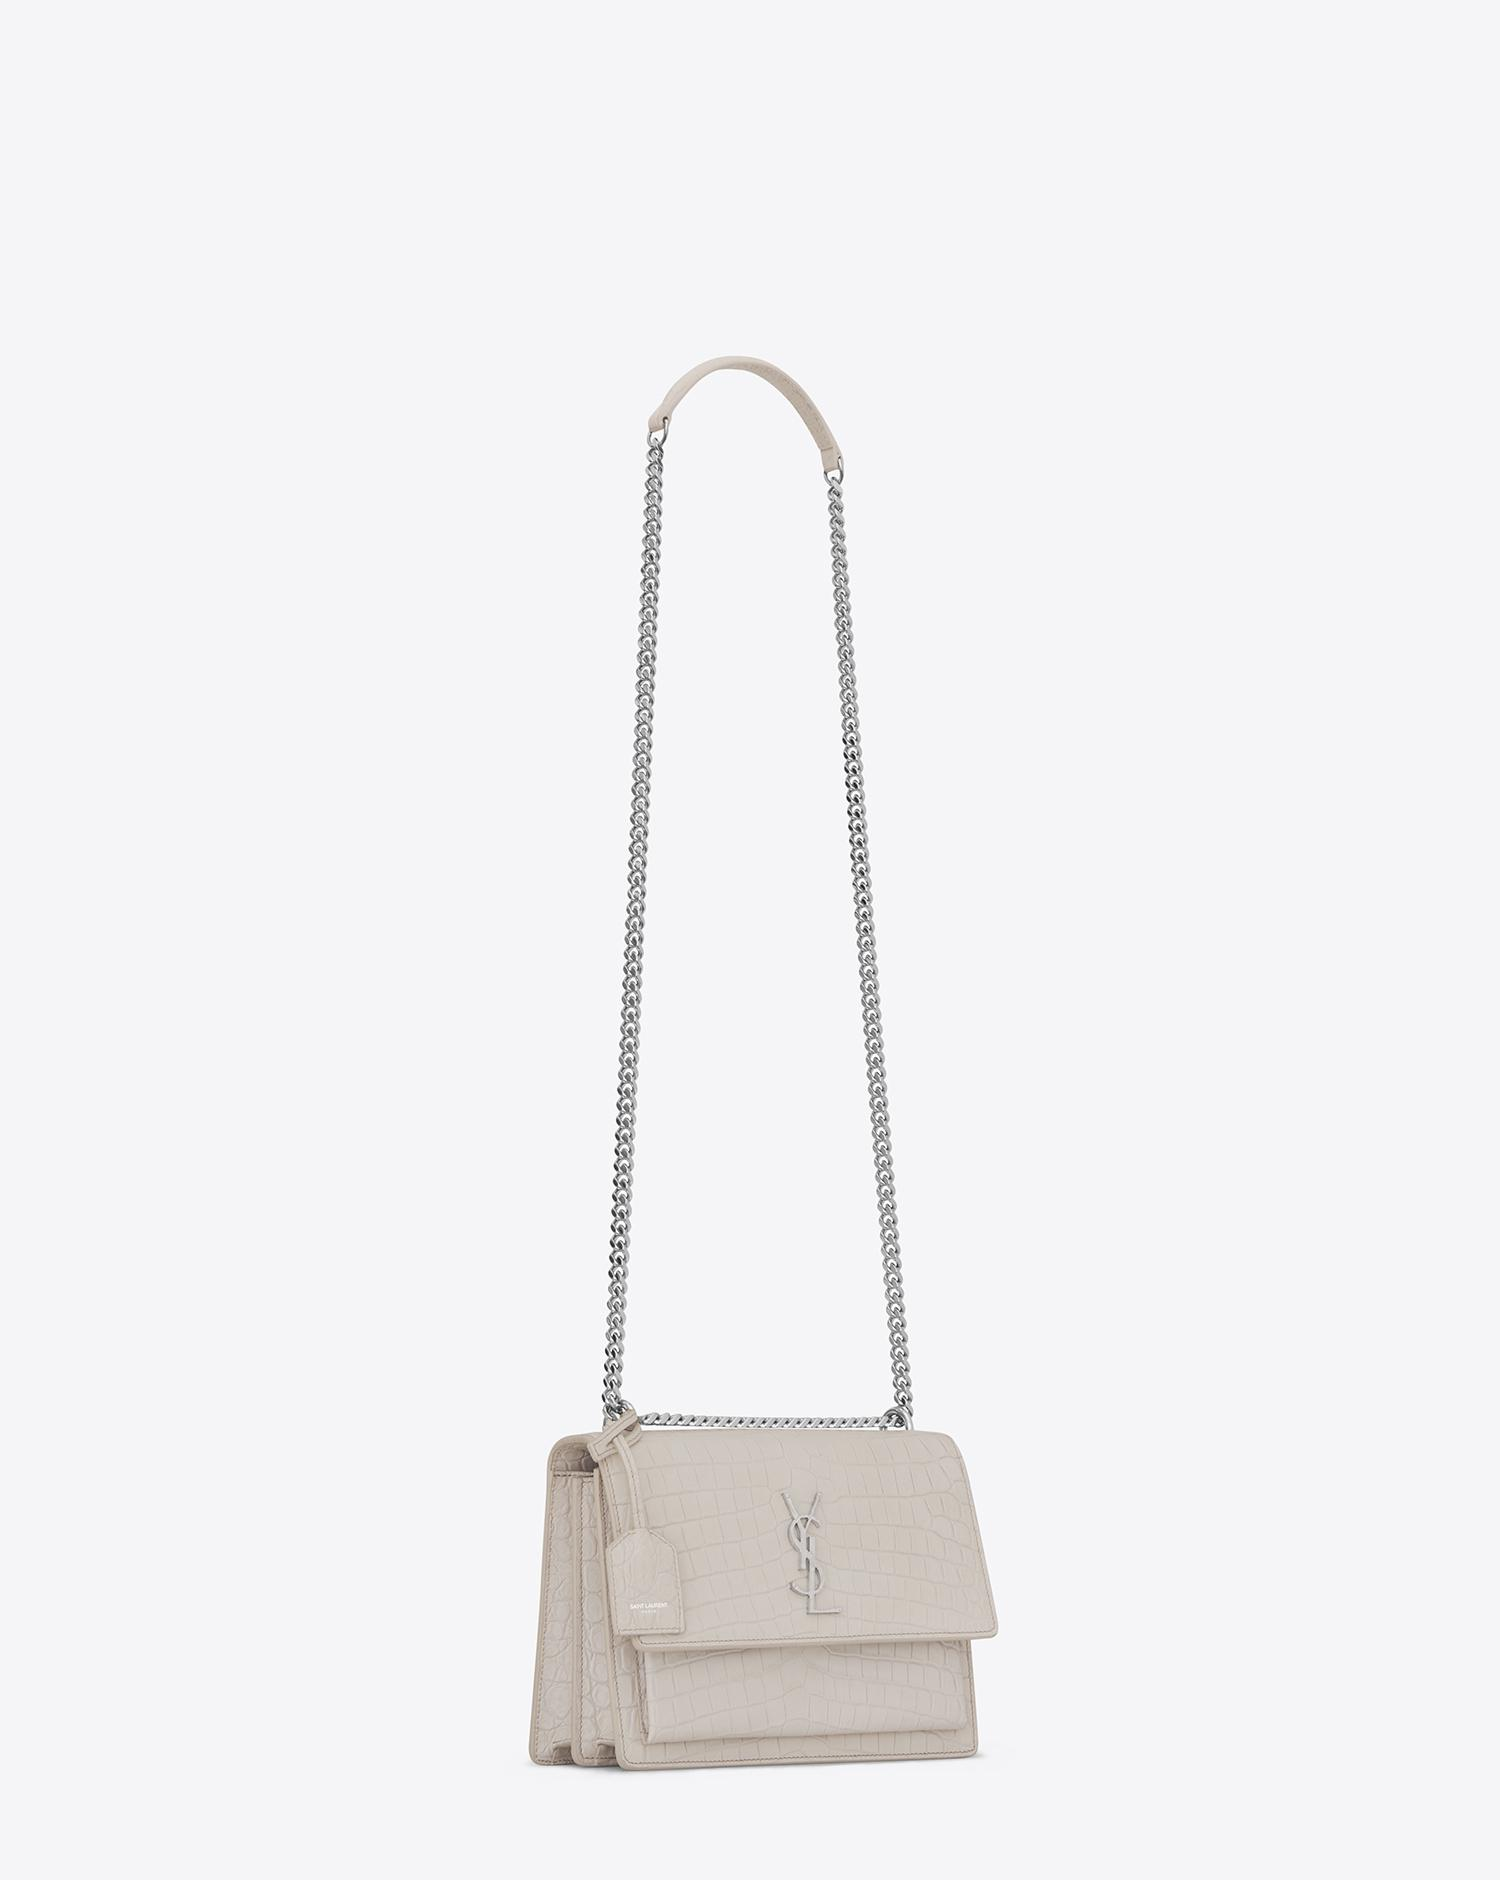 Saint Laurent. Women s Medium Sunset Bag In Icy White Crocodile Embossed  Leather 5e1992918529d